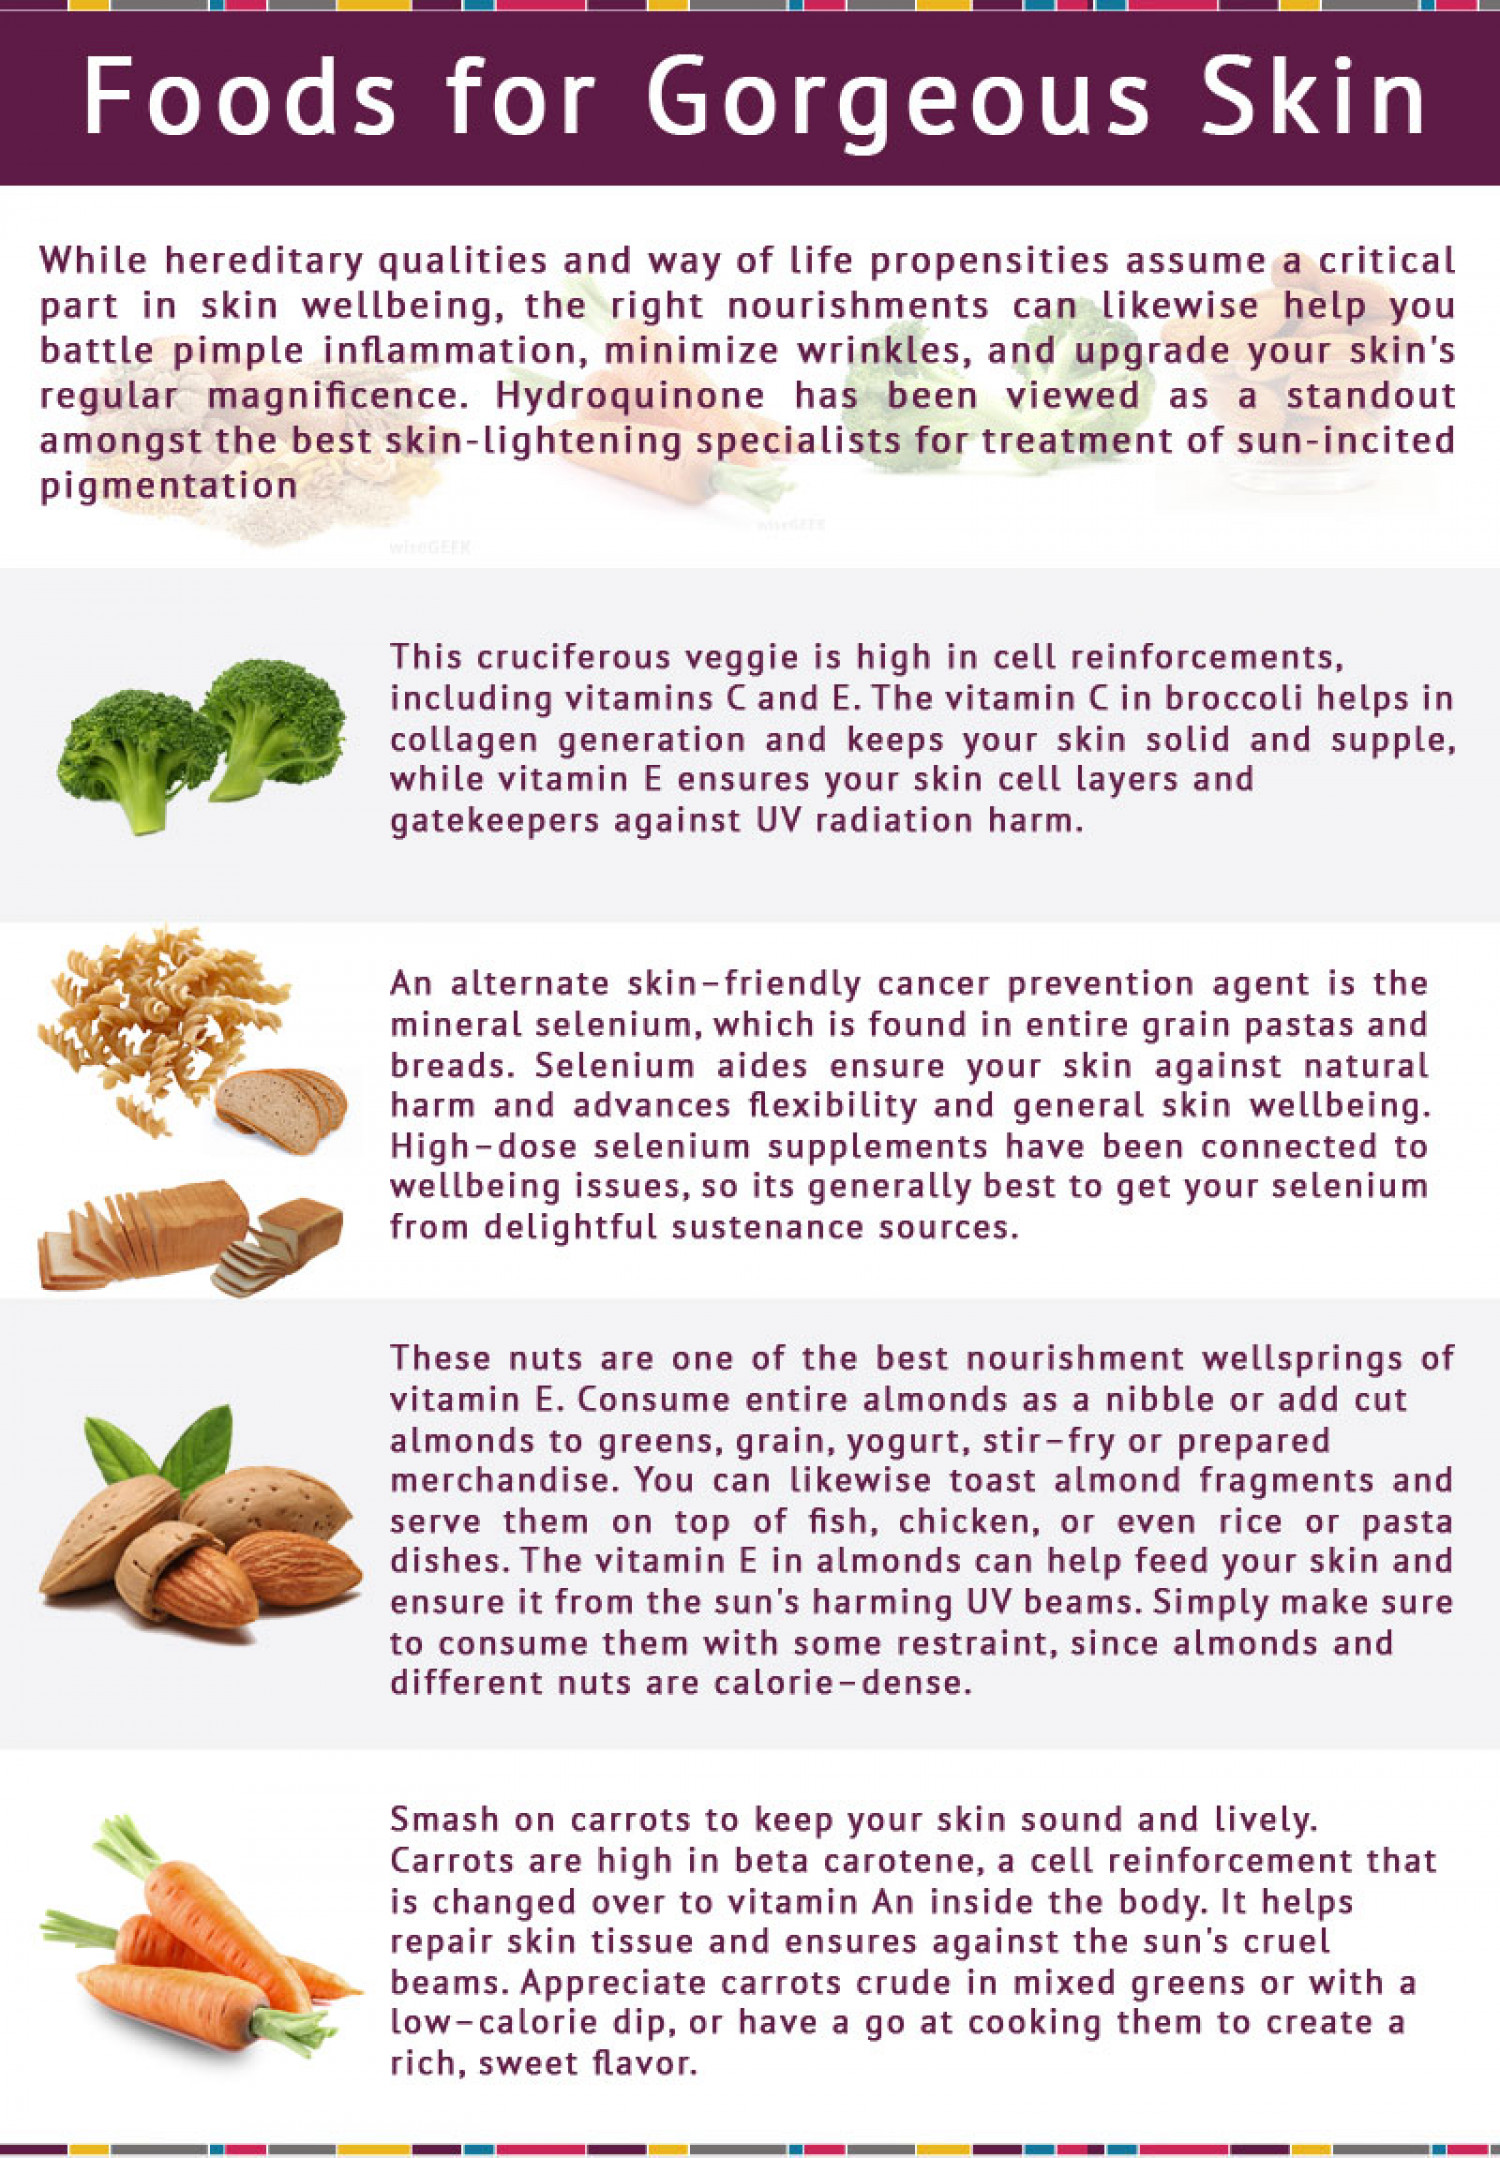 FOODS FOR GORGEOUS SKIN Infographic